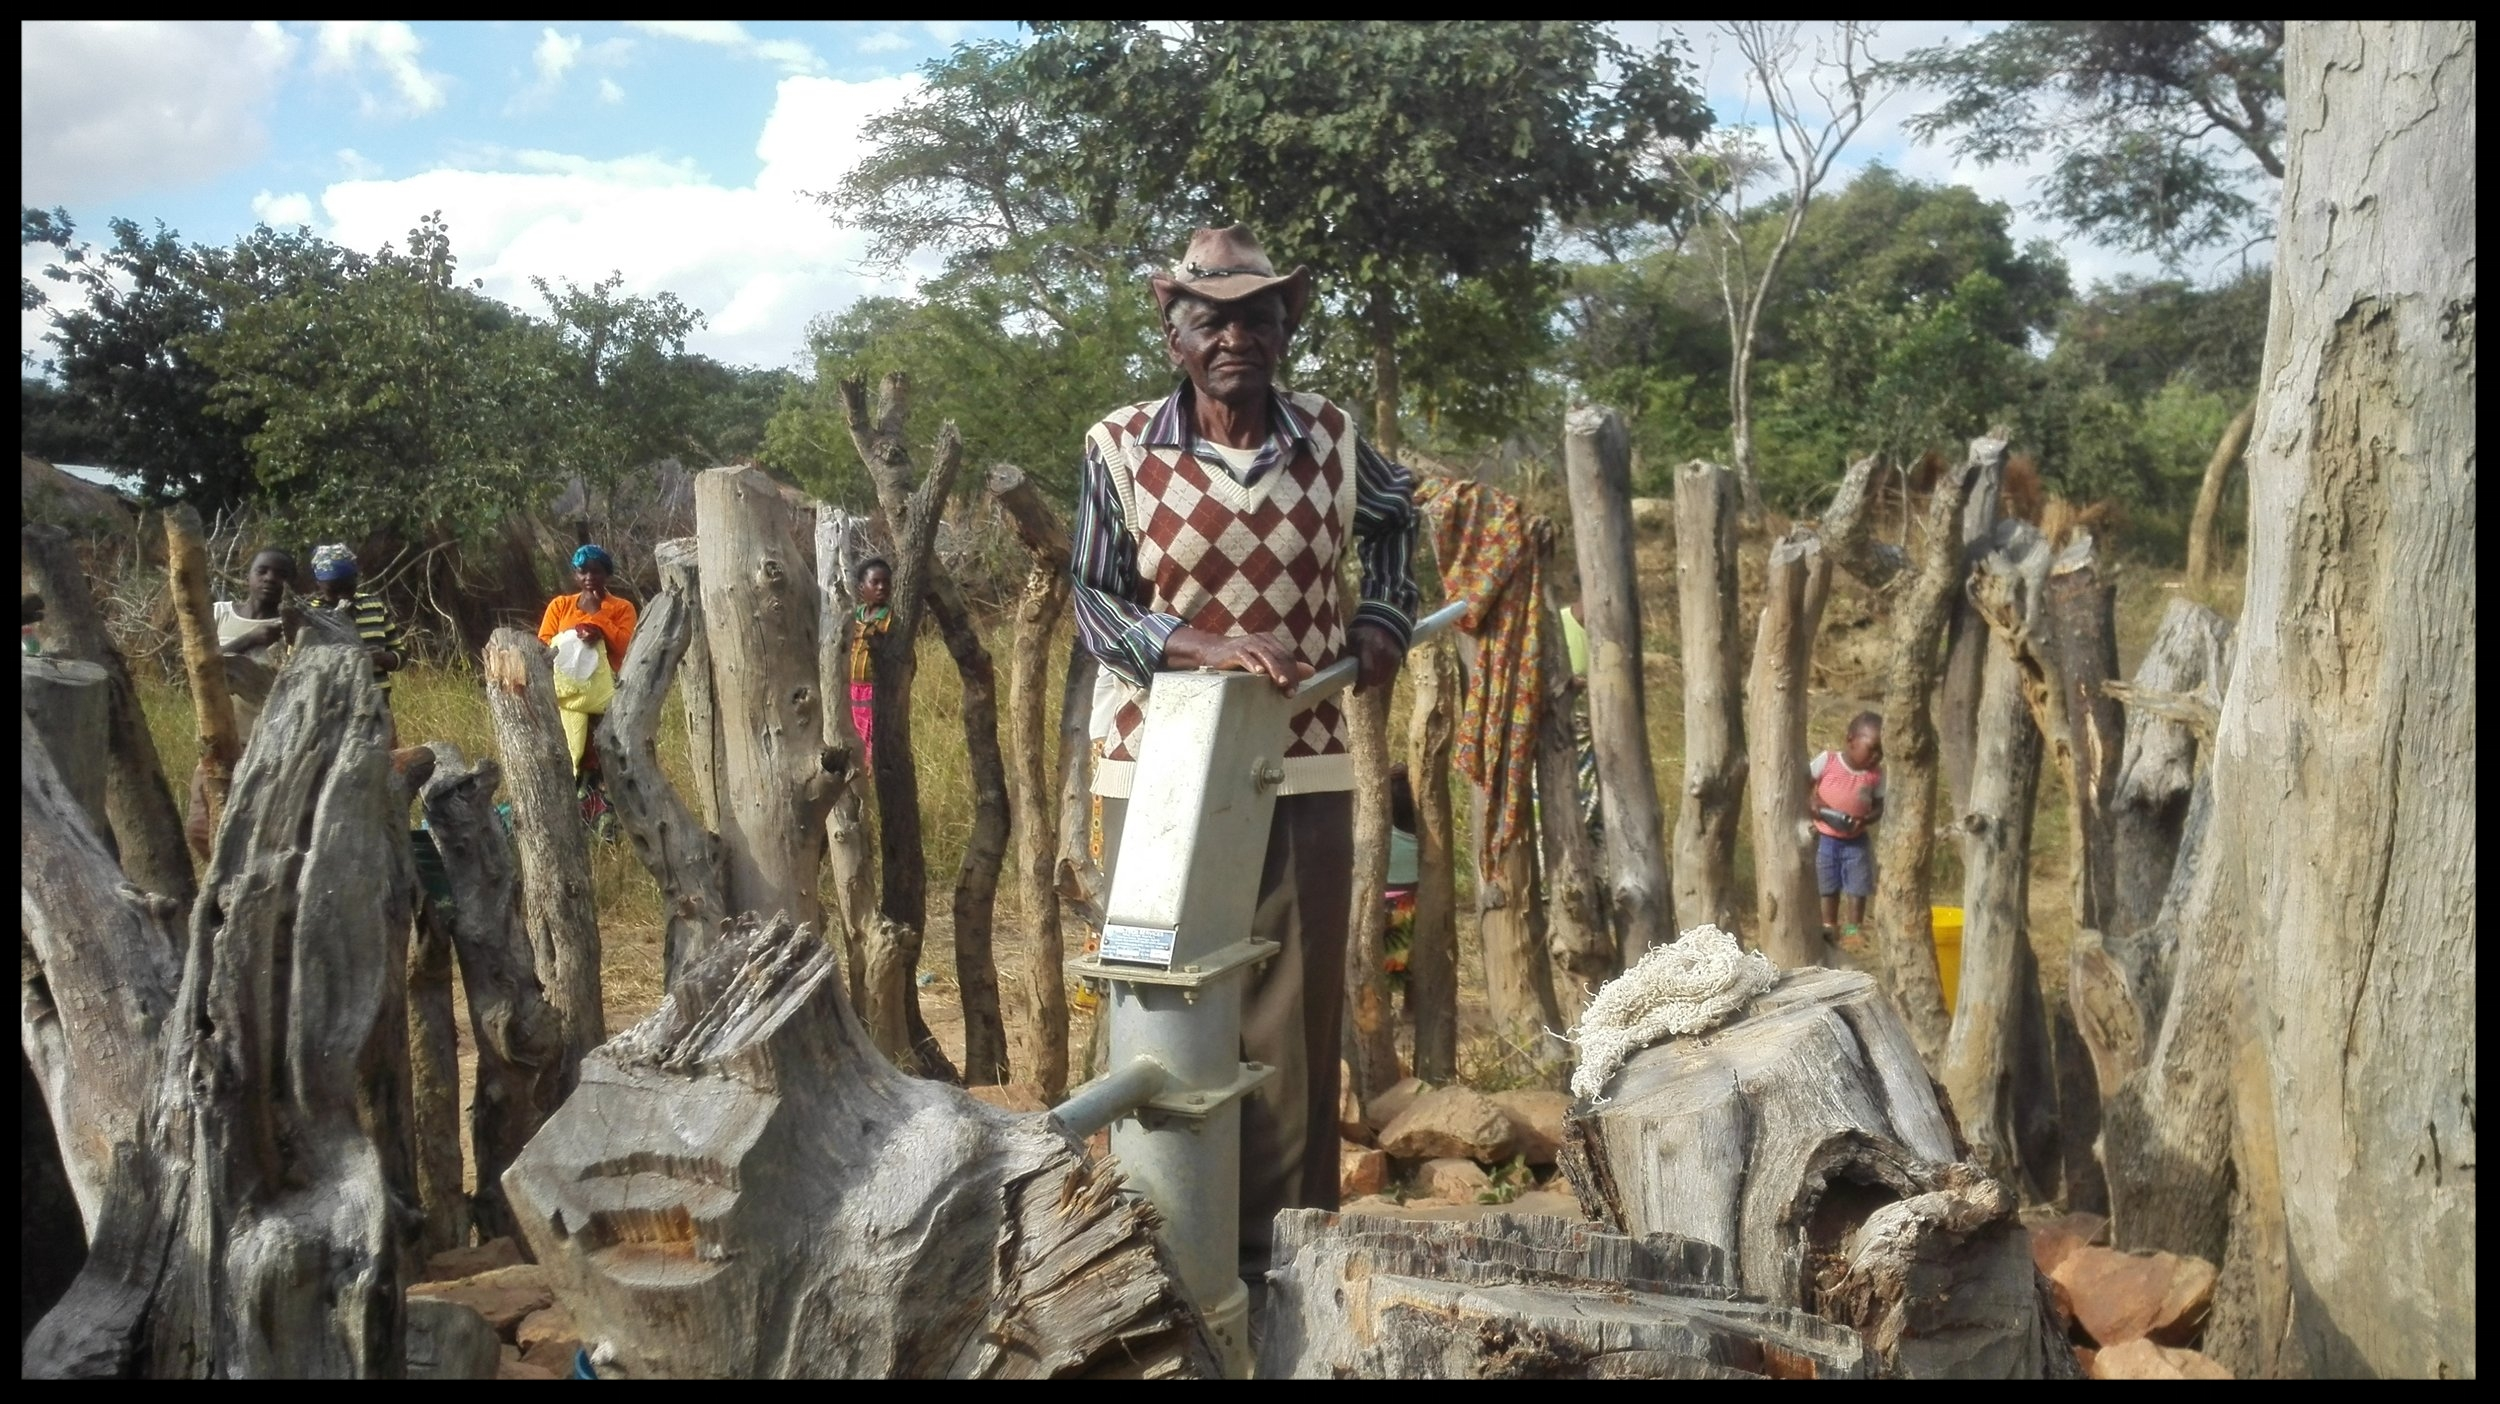 The wells built in Zambia have a hand pump (pictured). The village work together to build a fence around the well to protect it from wildlife and livestock. The village forms a committee to take responsibility for well maintenance. The man pictured here is the Elder of the Sibalwa well committee.